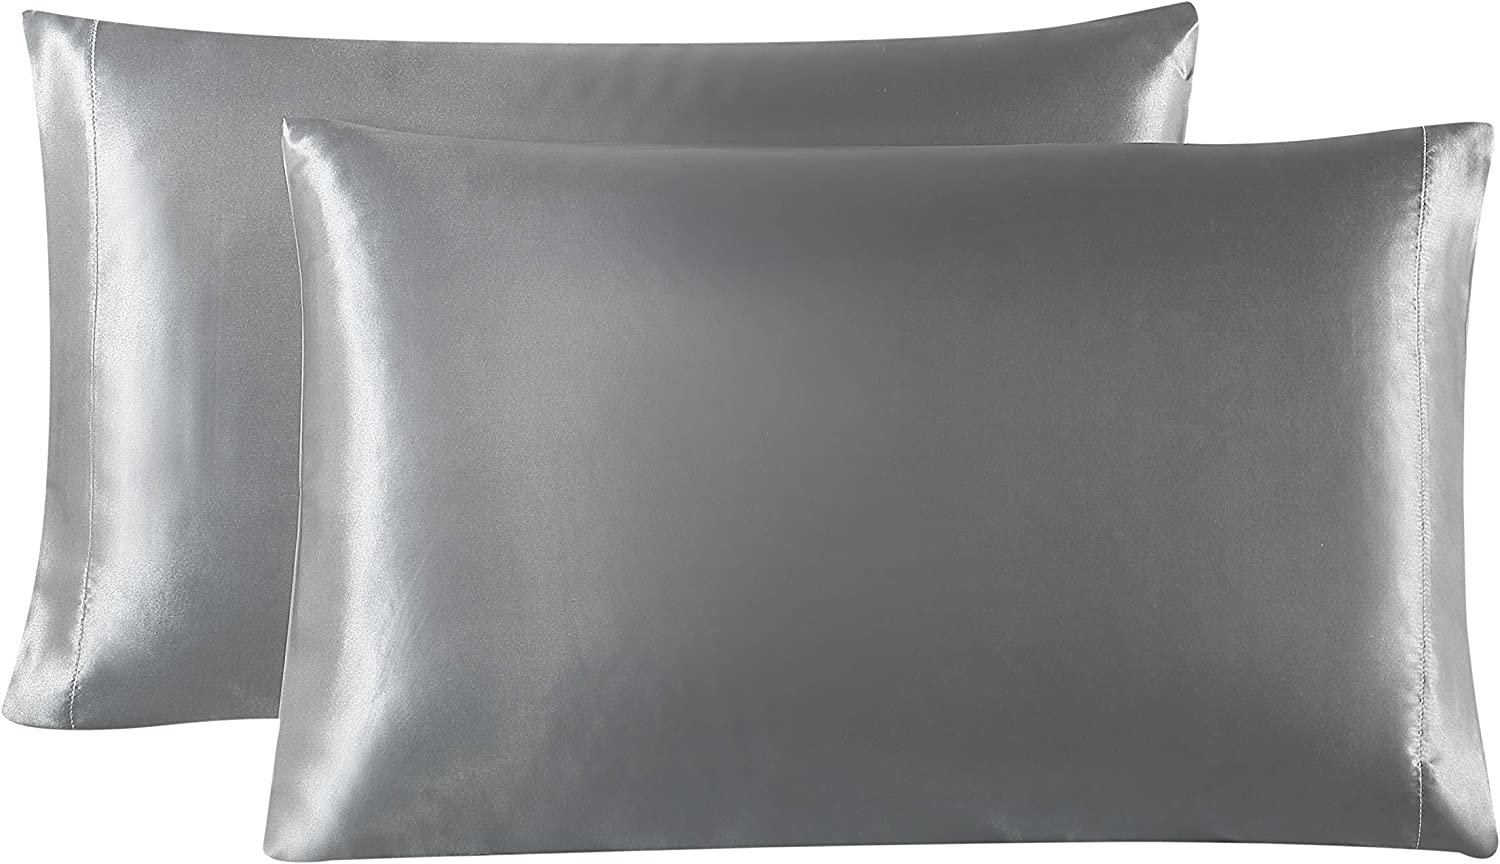 Love's cabin Silk Satin Pillowcase for Hair and Skin (Dark Gray, 20x26 inches) Slip Pillow Cases Standard Size Set of 2 - Satin Cooling Pillow Covers with Envelope Closure